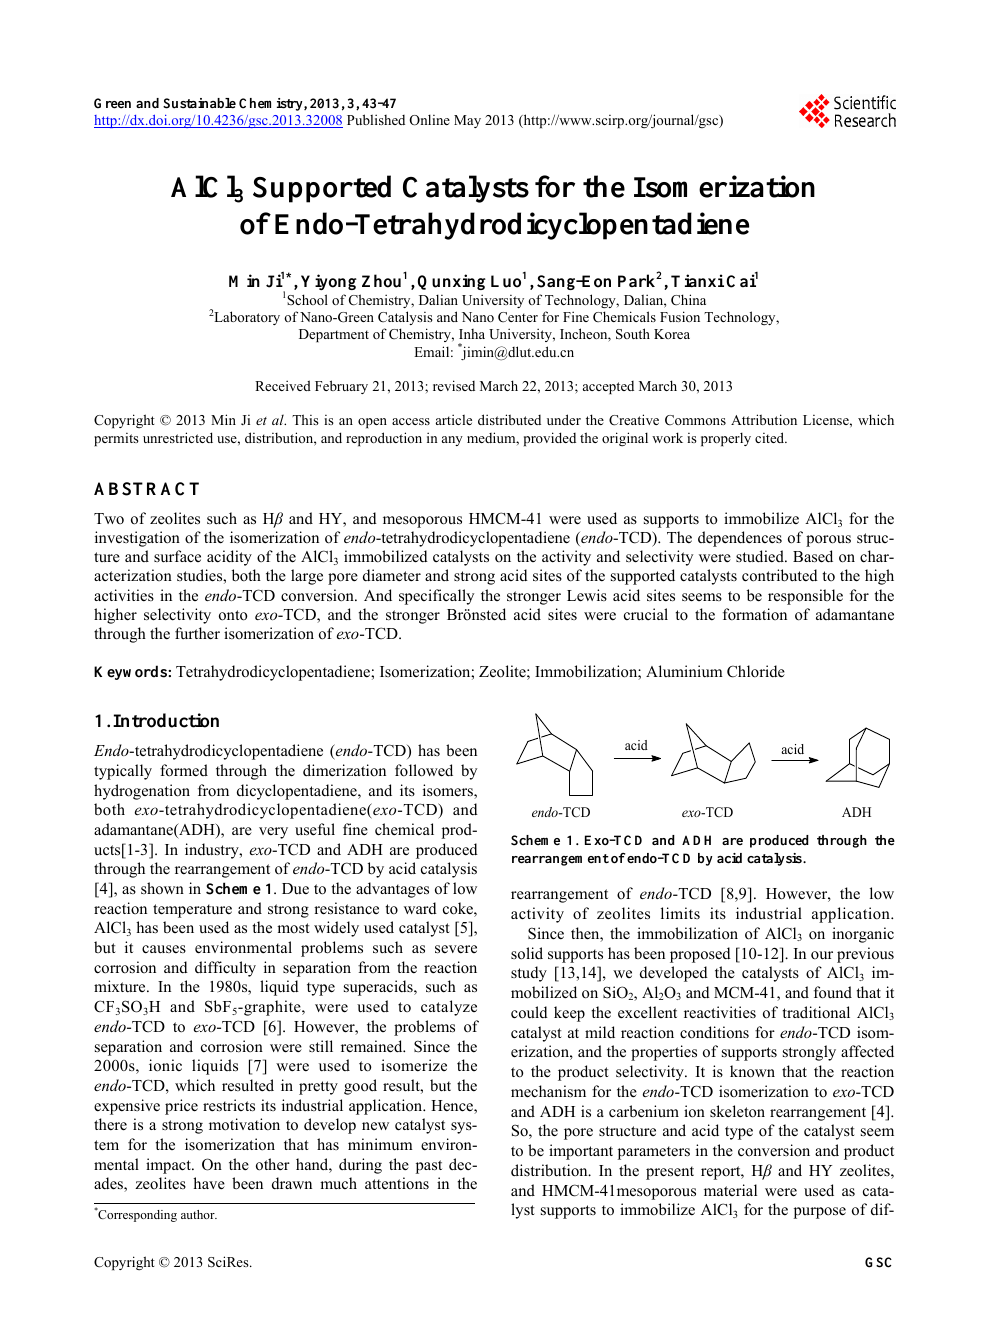 AlCl3 Supported Catalysts for the Isomerization of <